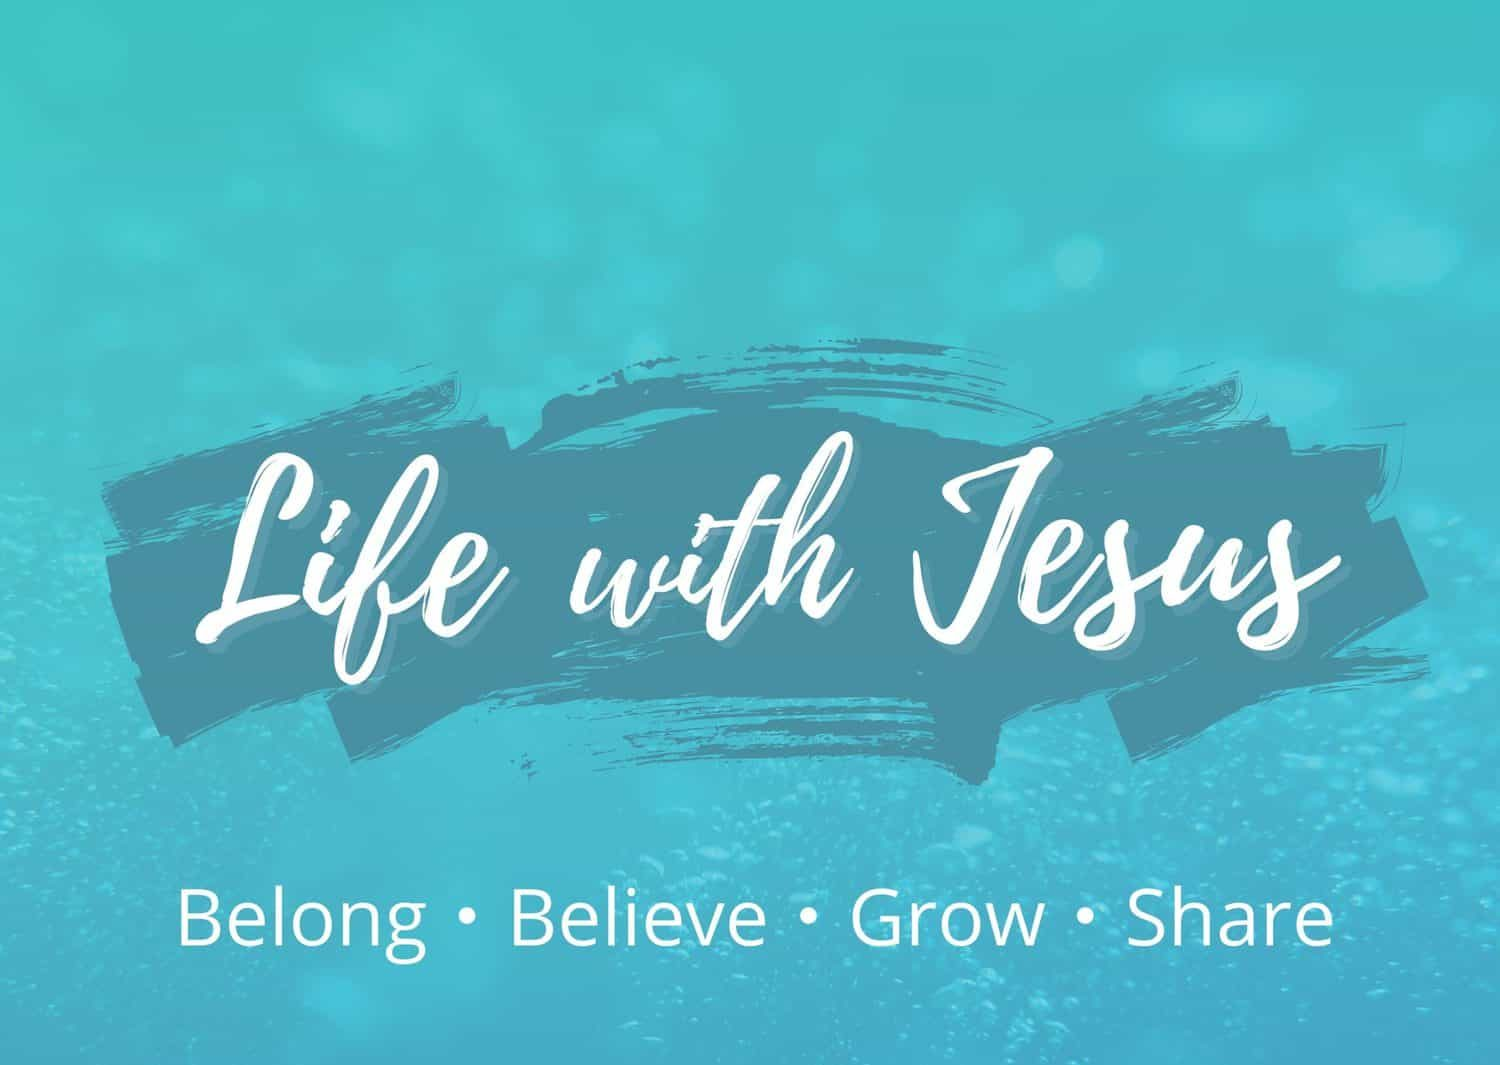 Vision - life with Jesus